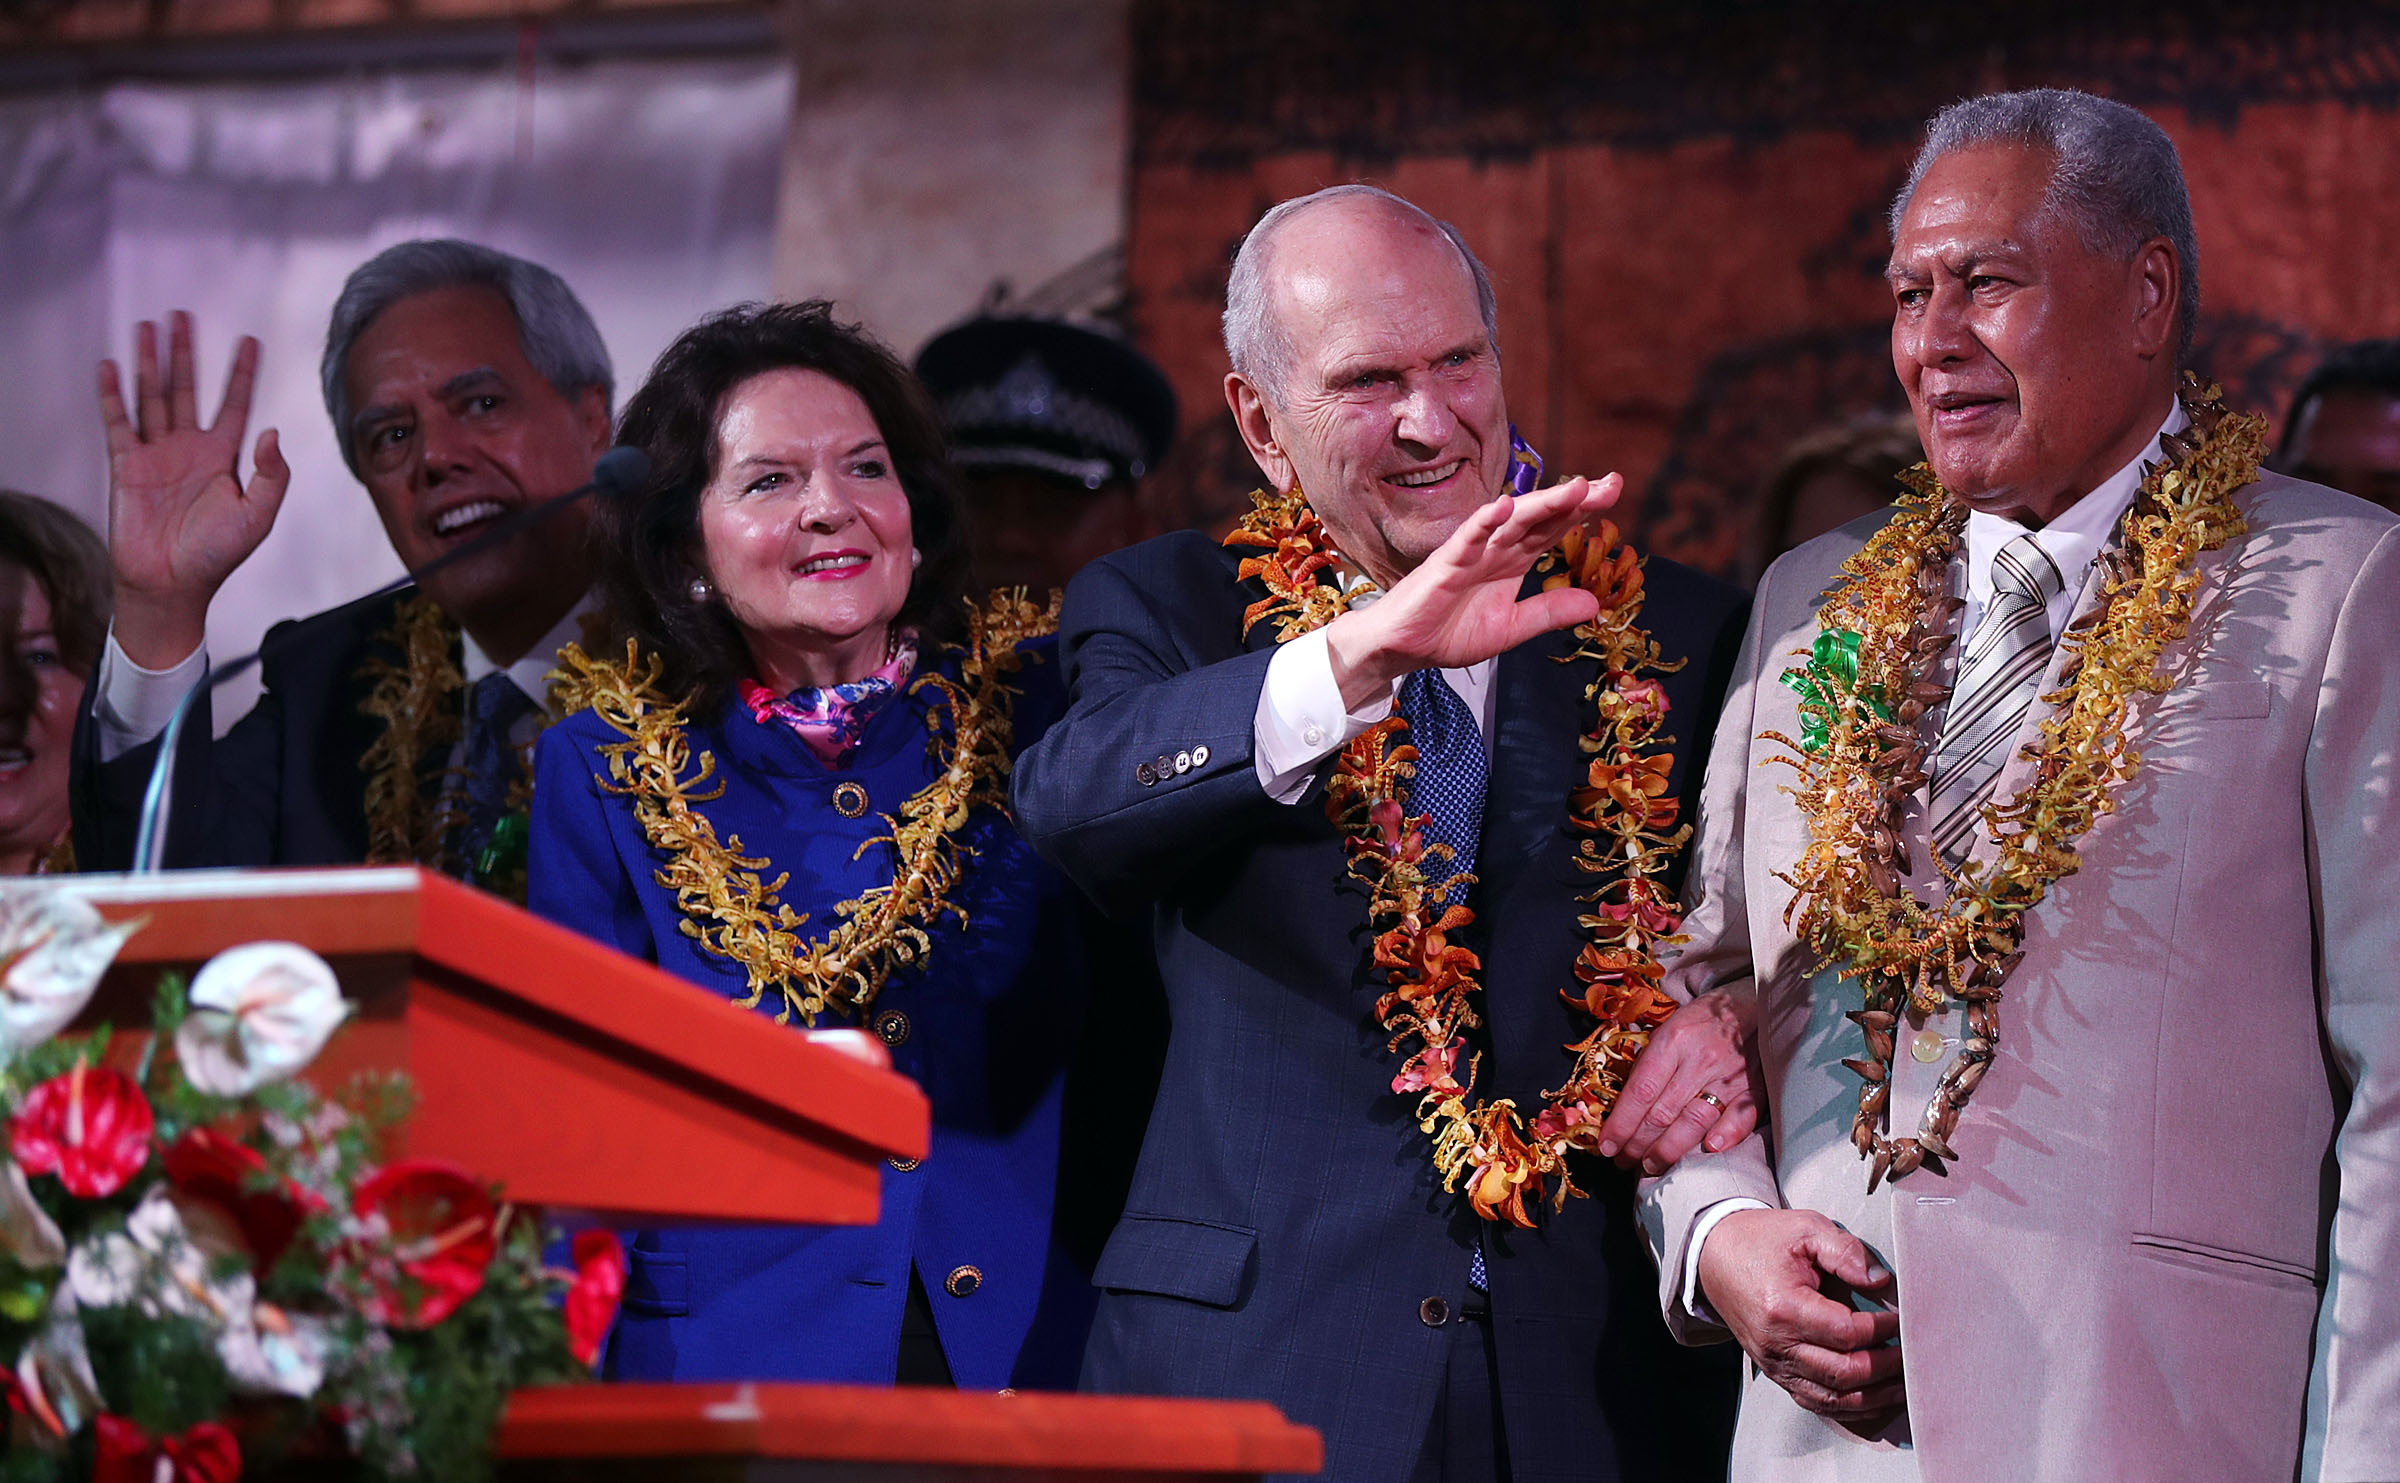 President Russell M. Nelson of The Church of Jesus Christ of Latter-day Saints and his wife, Sister Wendy Nelson, left, wave to those in attendance following a devotional in Apia, Samoa, on Saturday, May 18, 2019. At right is His Highness Tuimaleali'ifano Va'aleto'a Eti Sualauvi II, Samoa Head of State.